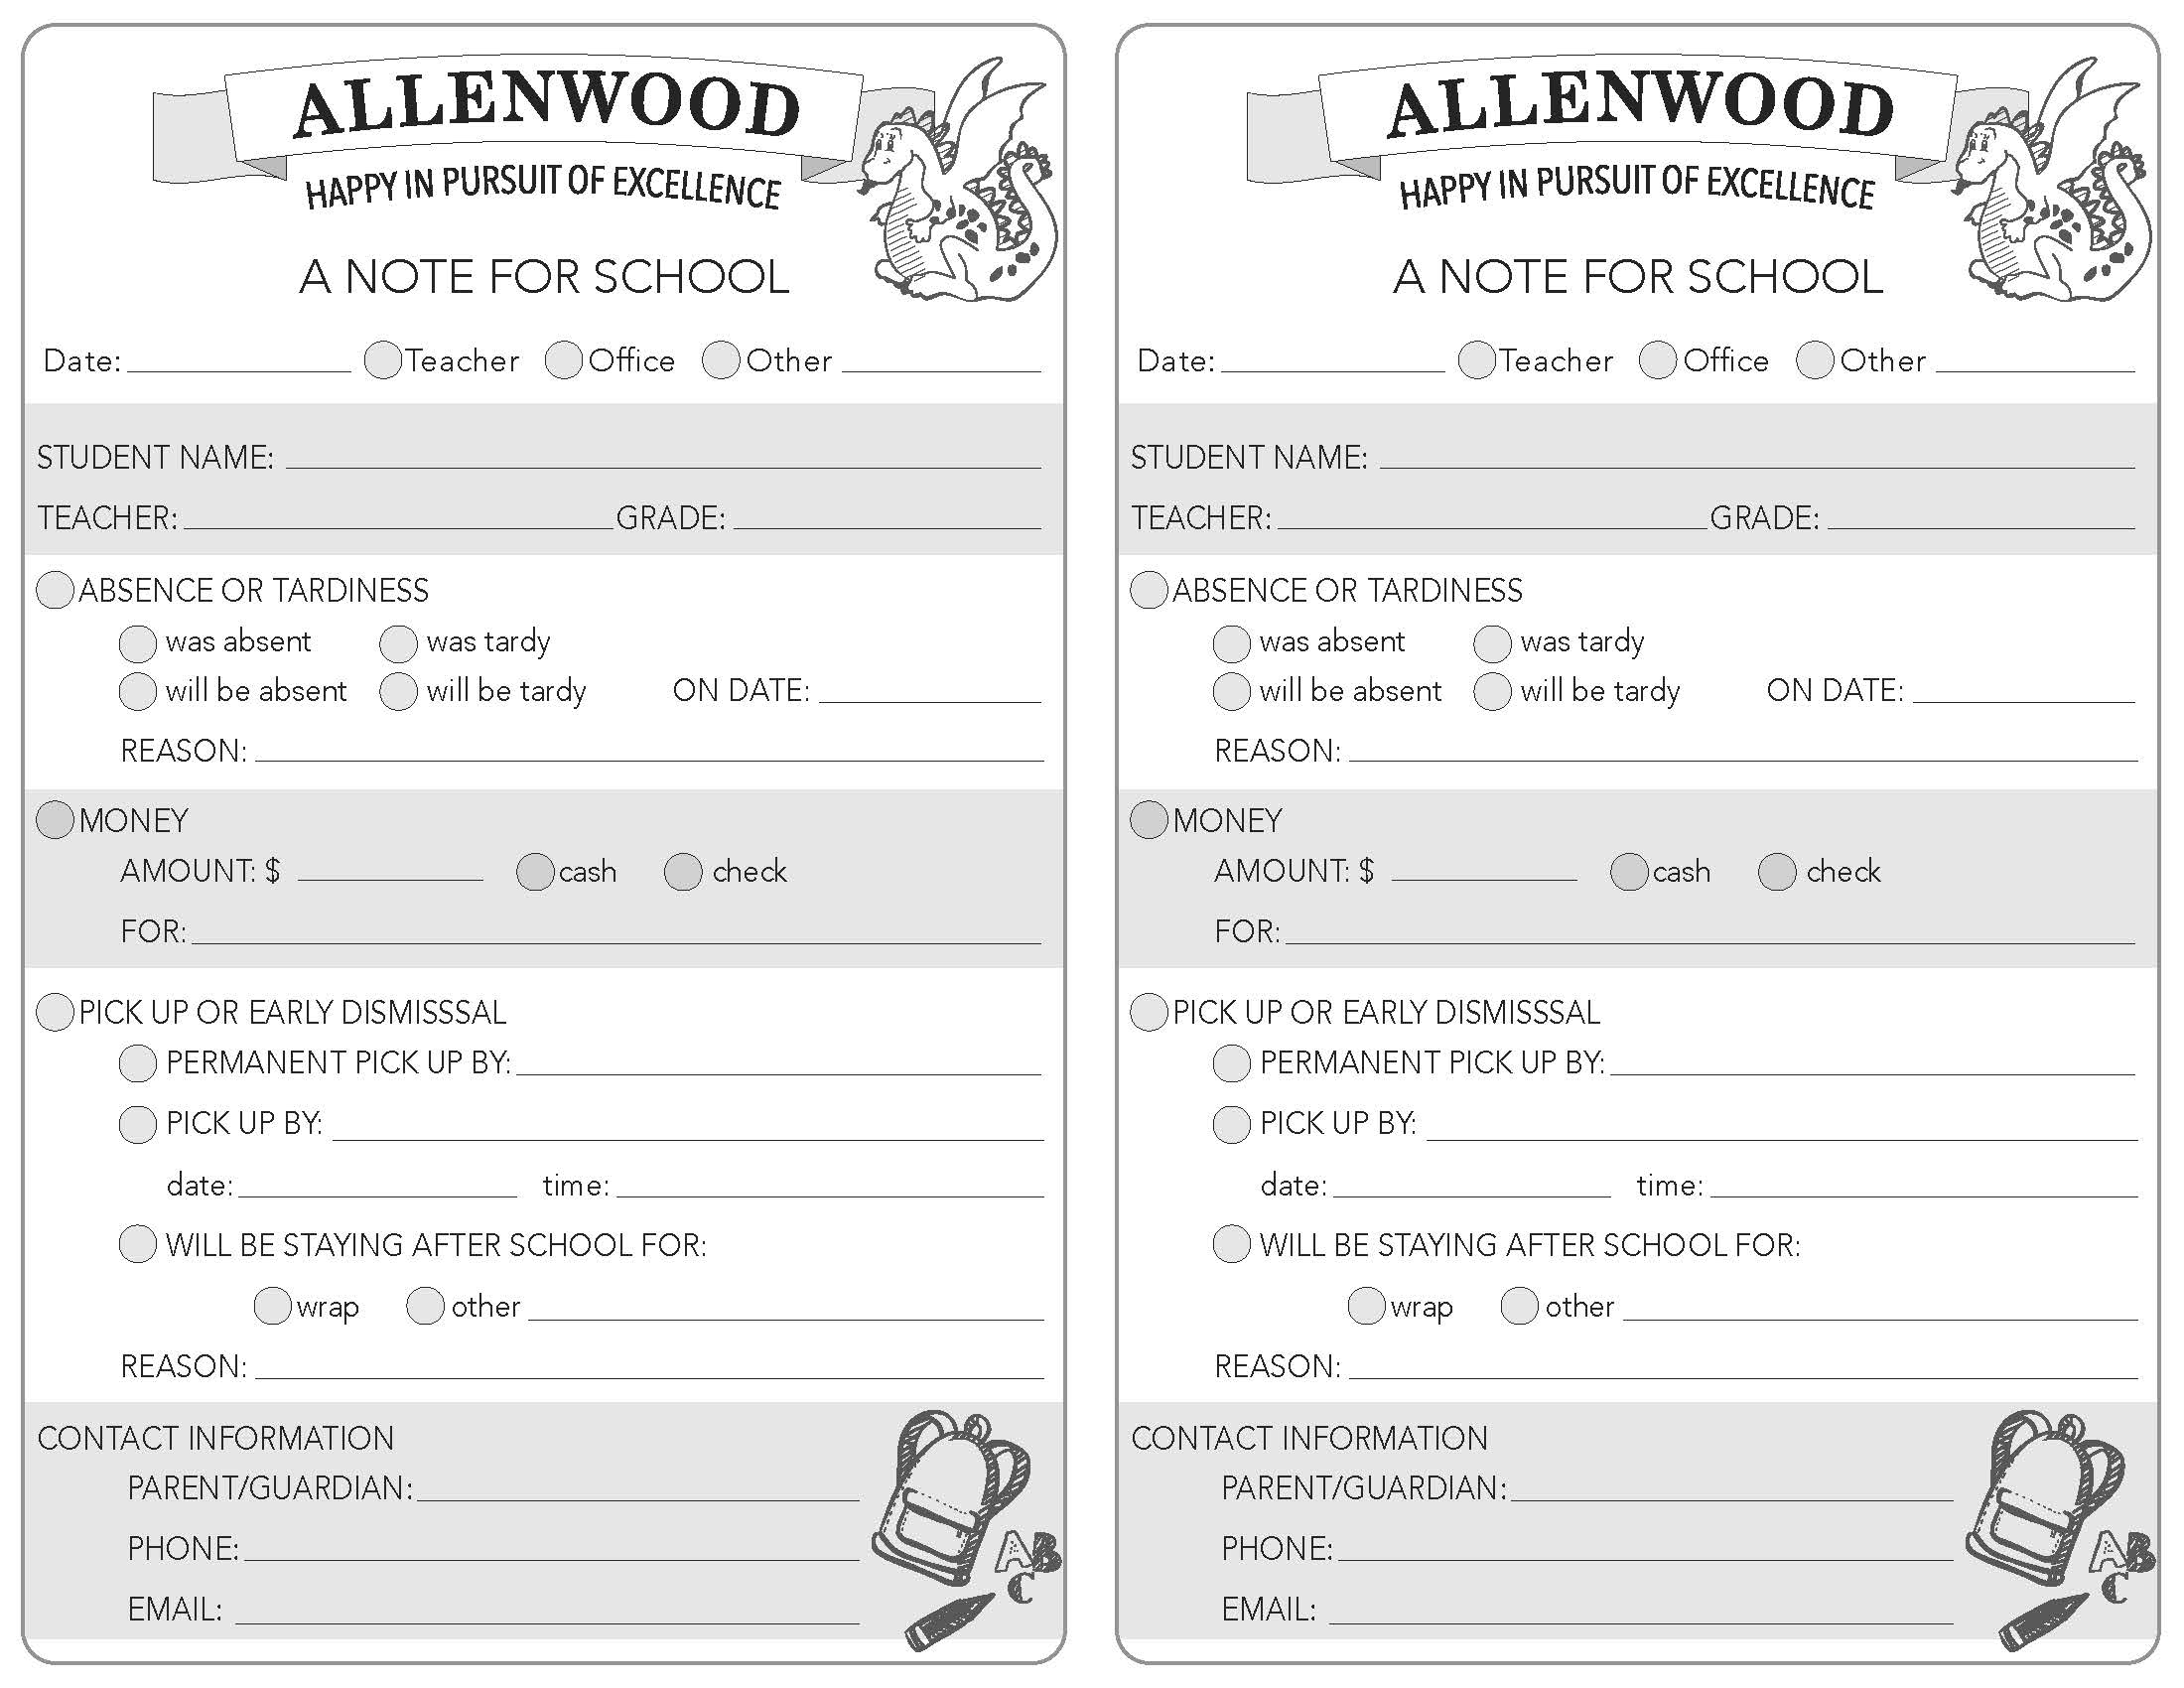 image about Notes Printable referred to as Printable Allenwood University Notes Allenwood Essential PTG